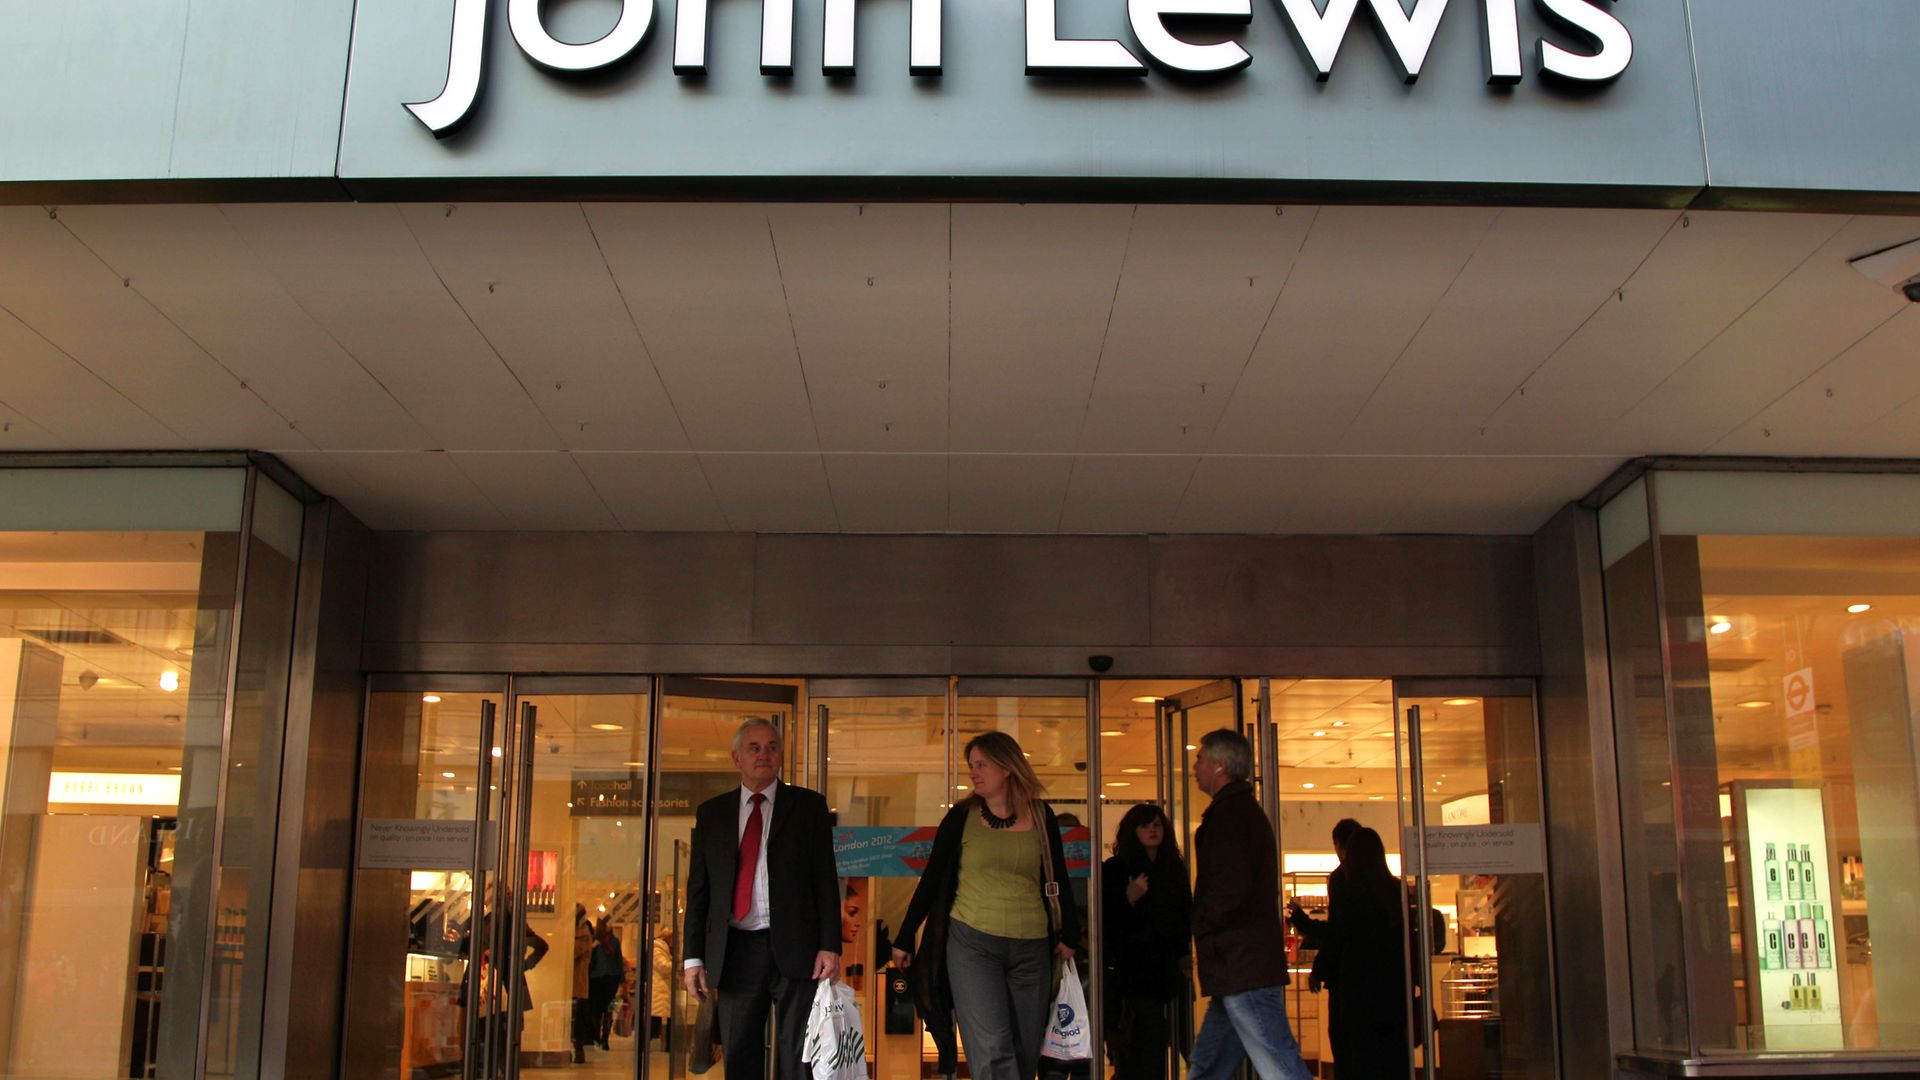 A John Lewis store in London - Credit: PA